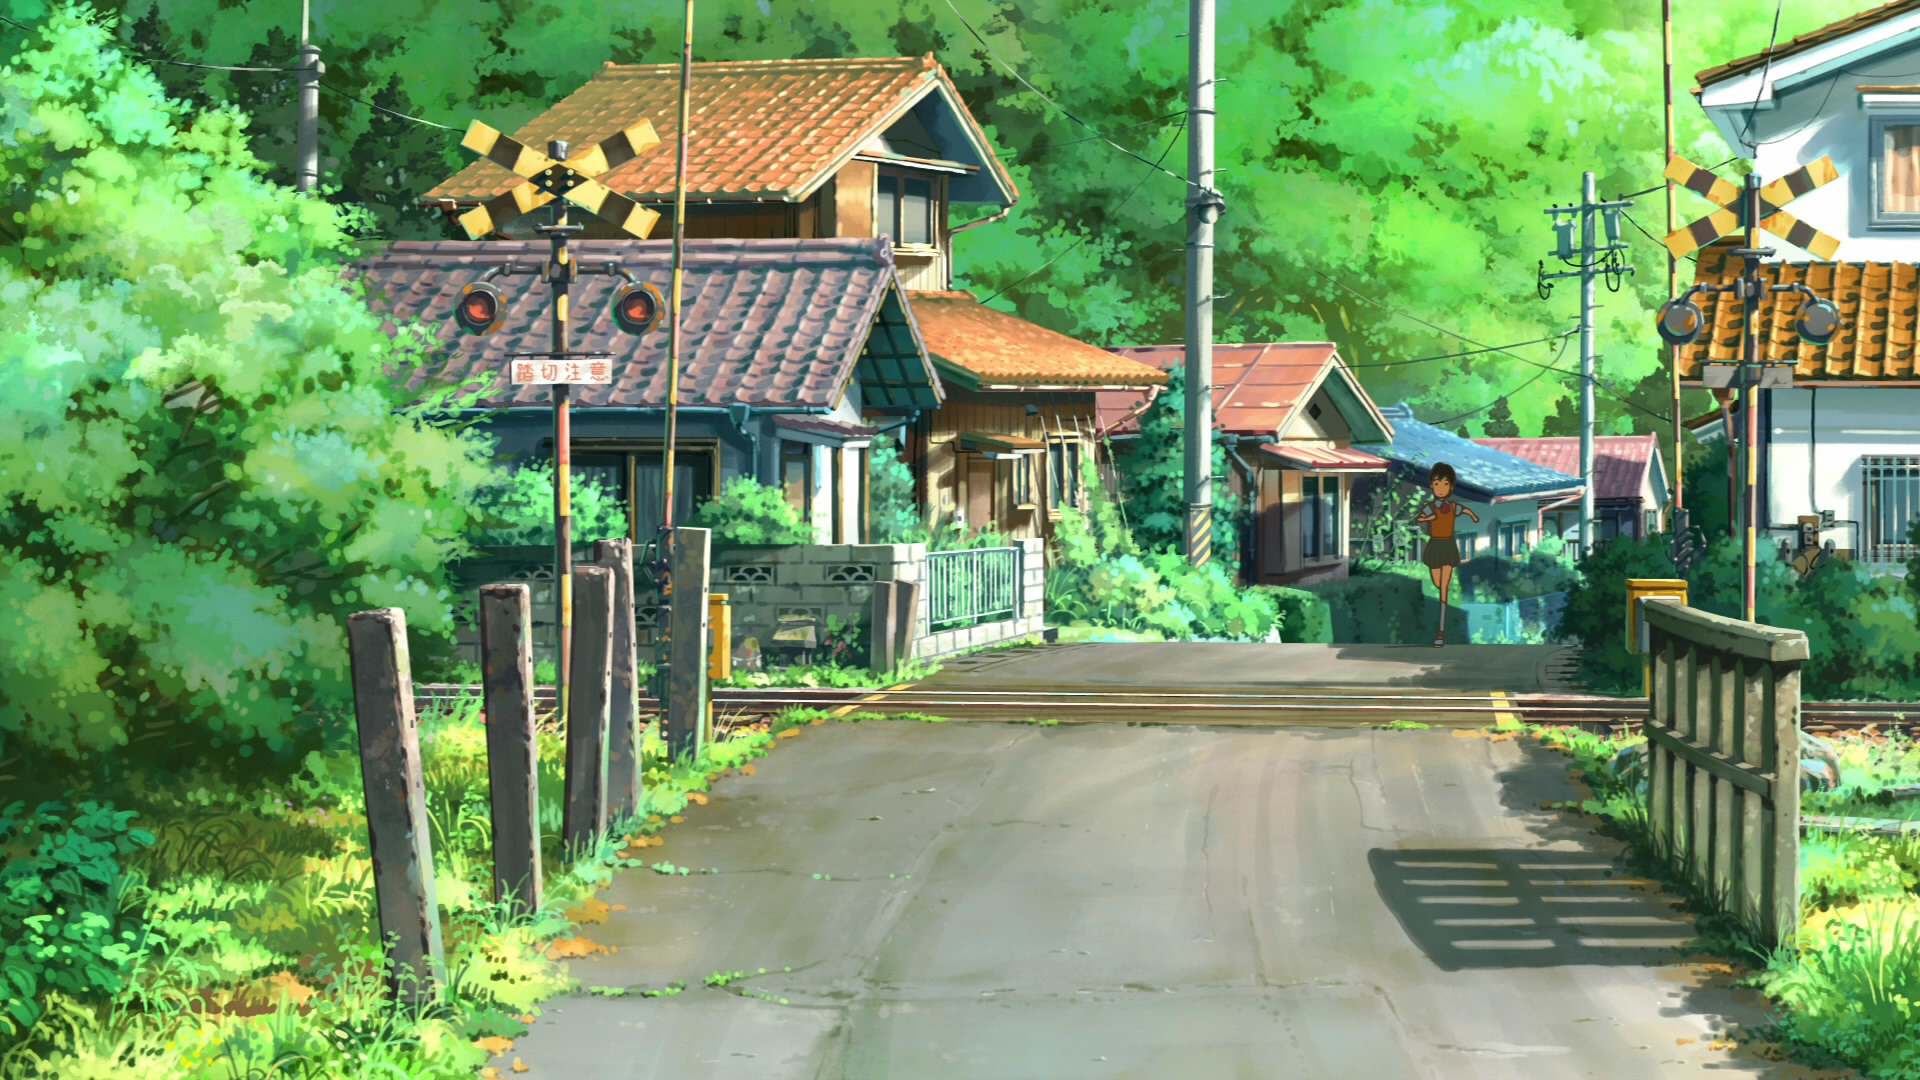 1920x1080 Anime Scenery Wallpaper